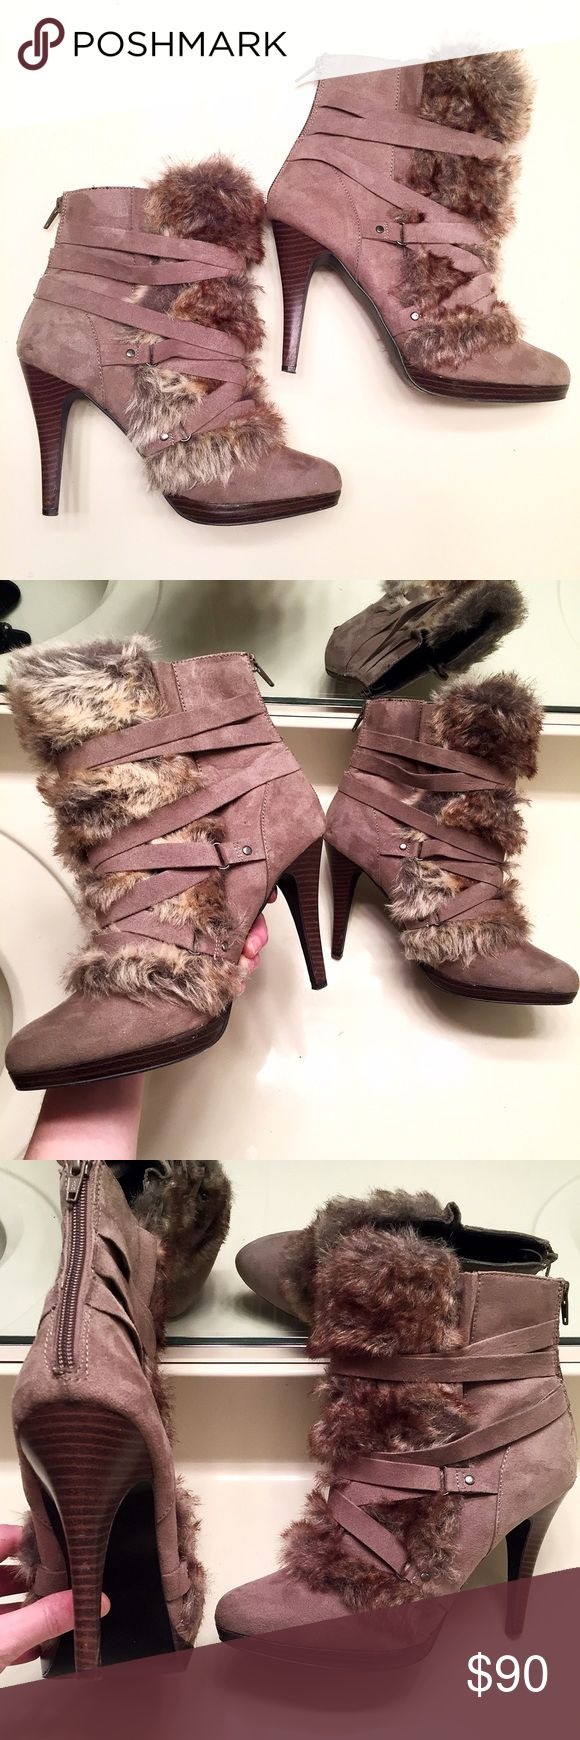 [Elle] gray & brown heeled boots with back zipper These boots have been worn once but are in excellent condition. Super cute and unique style. Perfect for both a casual or classy night out. Women's size 9 Elle Shoes Heeled Boots